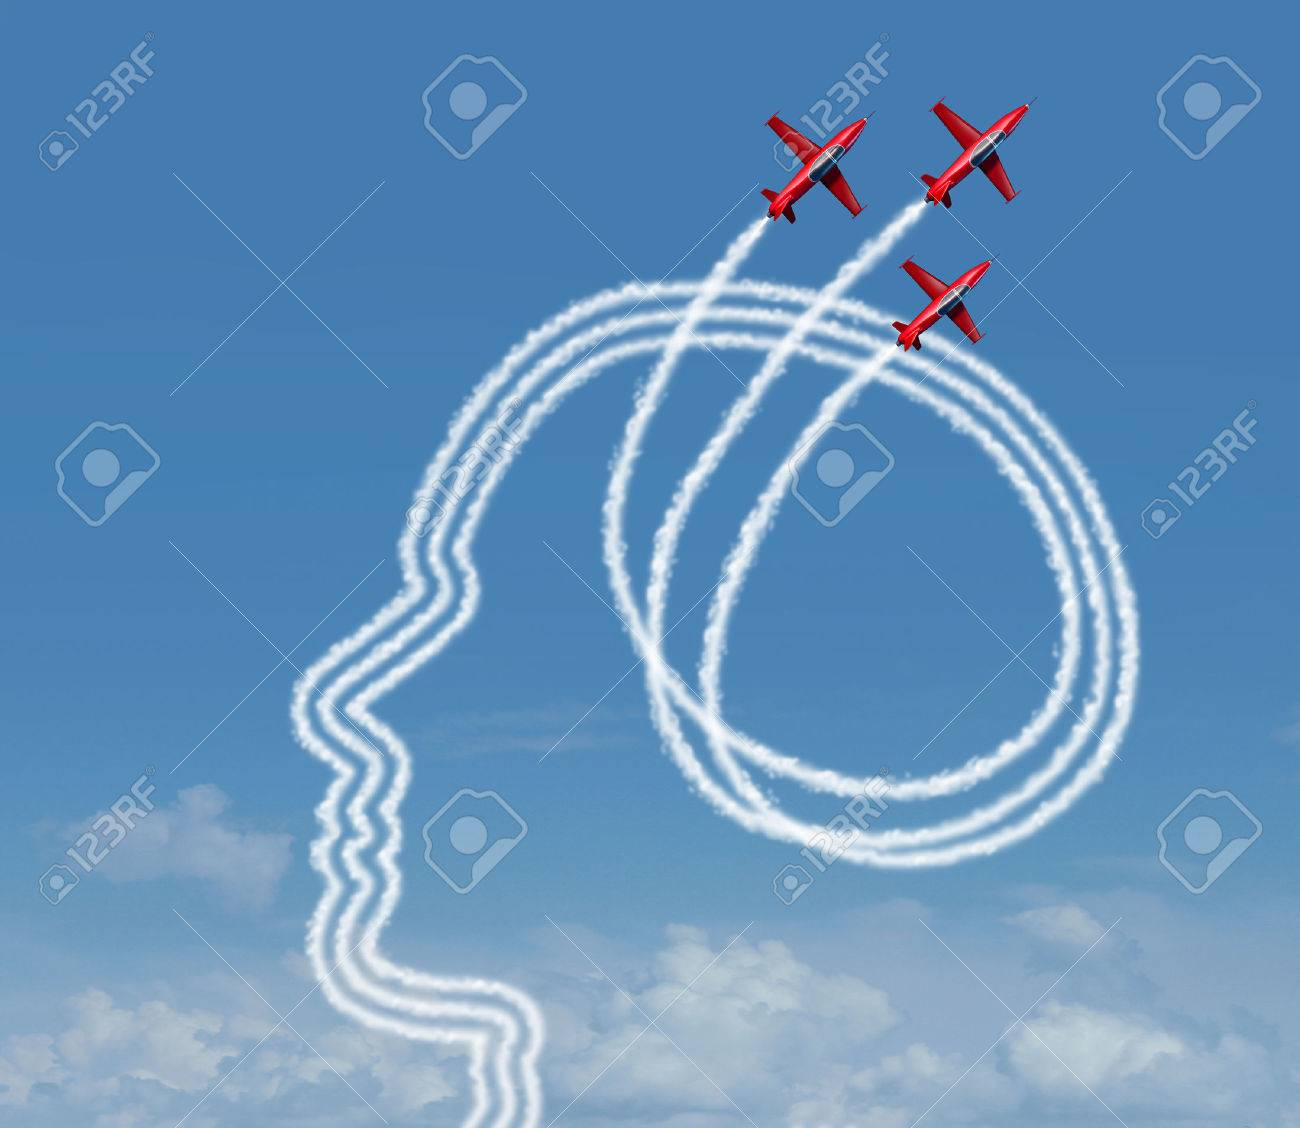 personal achievement and career aspiration concept as a group personal achievement and career aspiration concept as a group of acrobatic jet airplanes performing an air